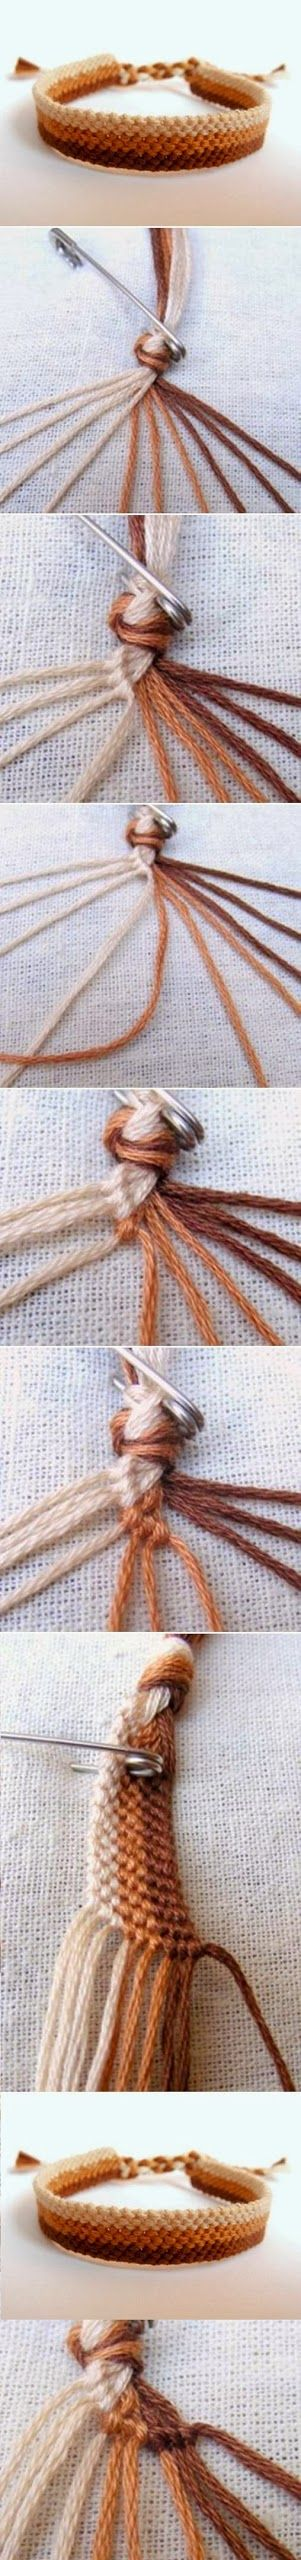 DIY : Easy Weave Bracelet - link is bad but picture tutorial here looks pretty easy to follow